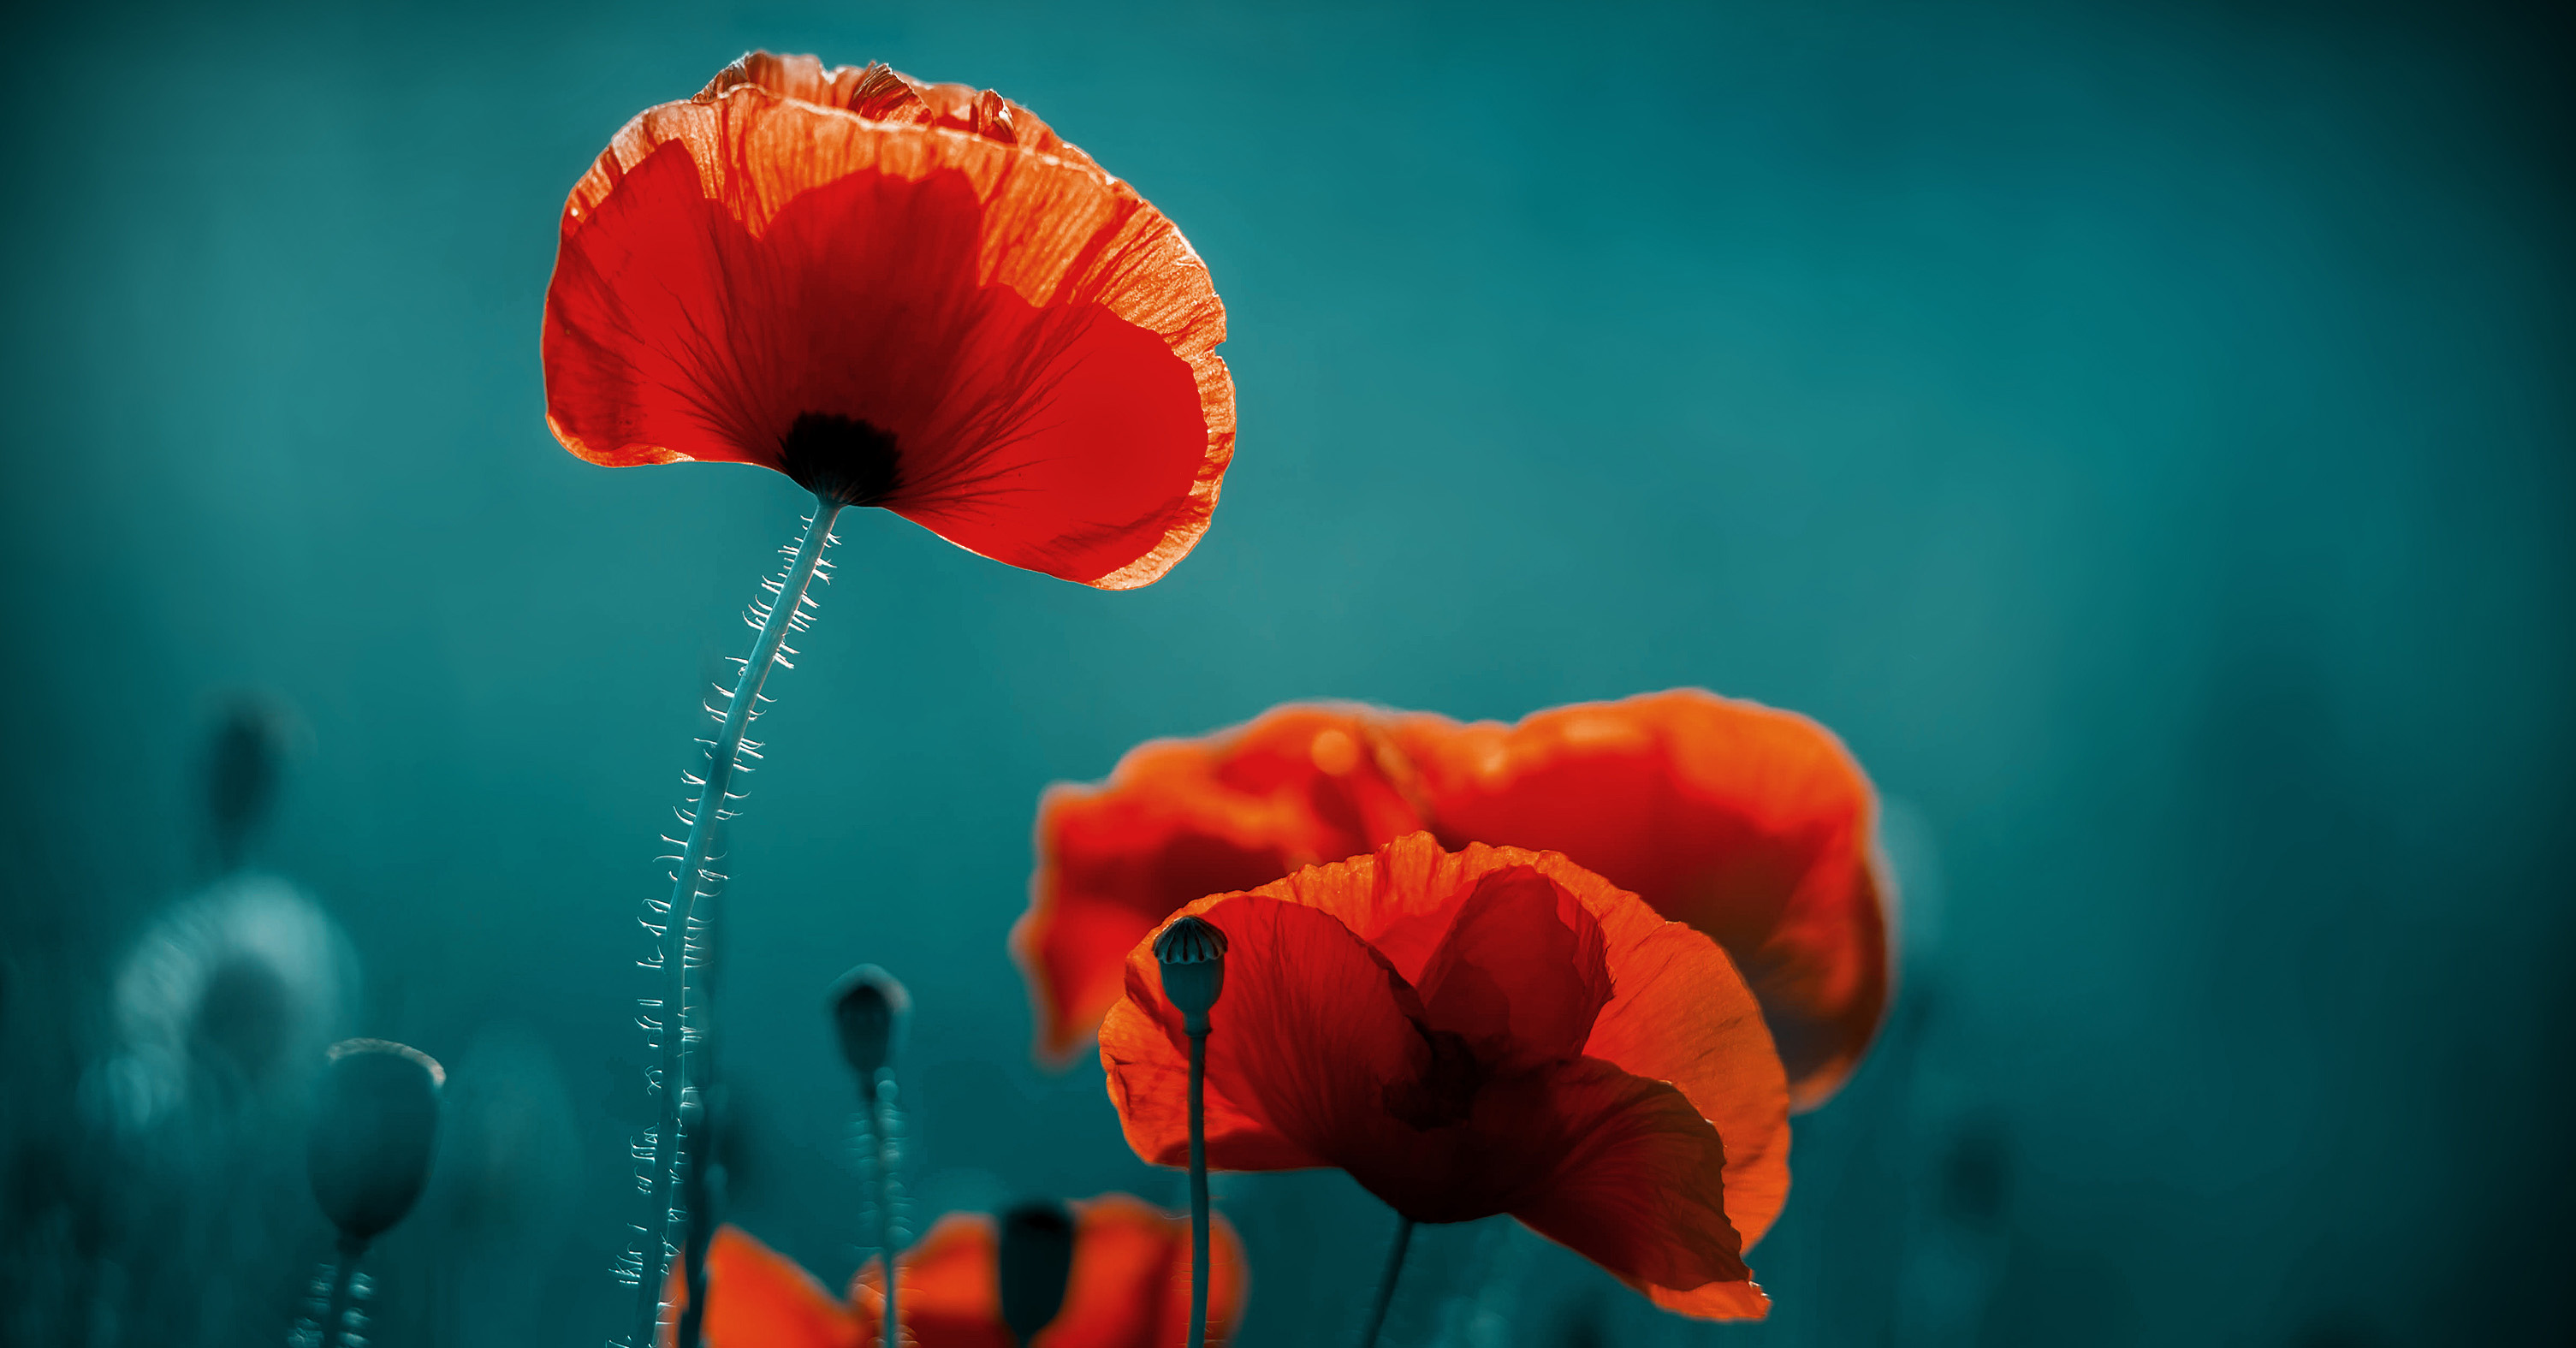 November Poppies Their Poignant History And Interesting Facts